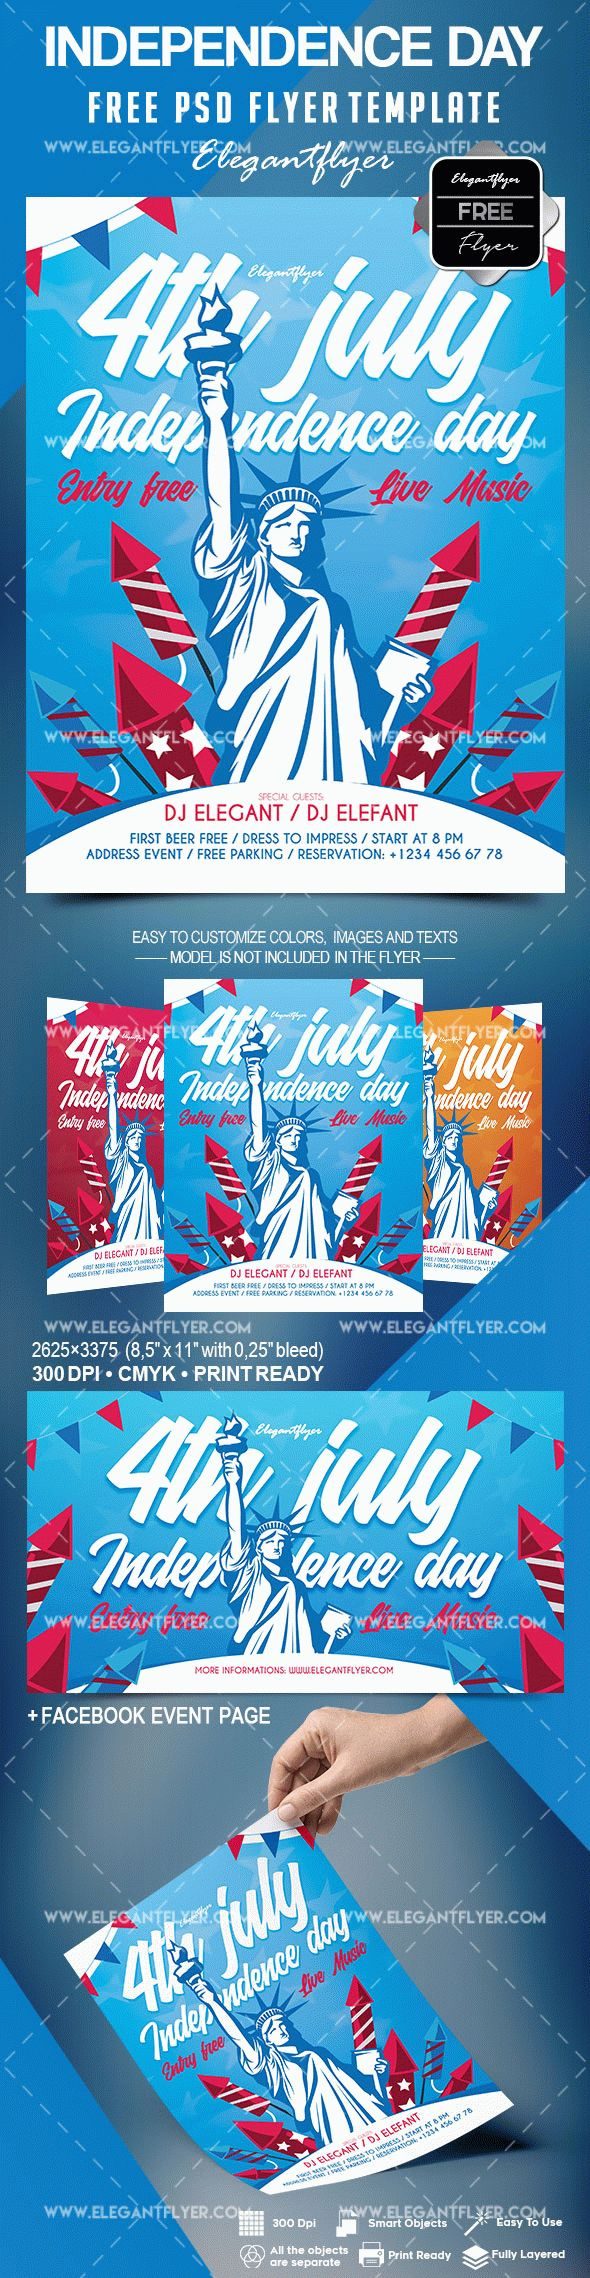 Free Flyer for Independence Day